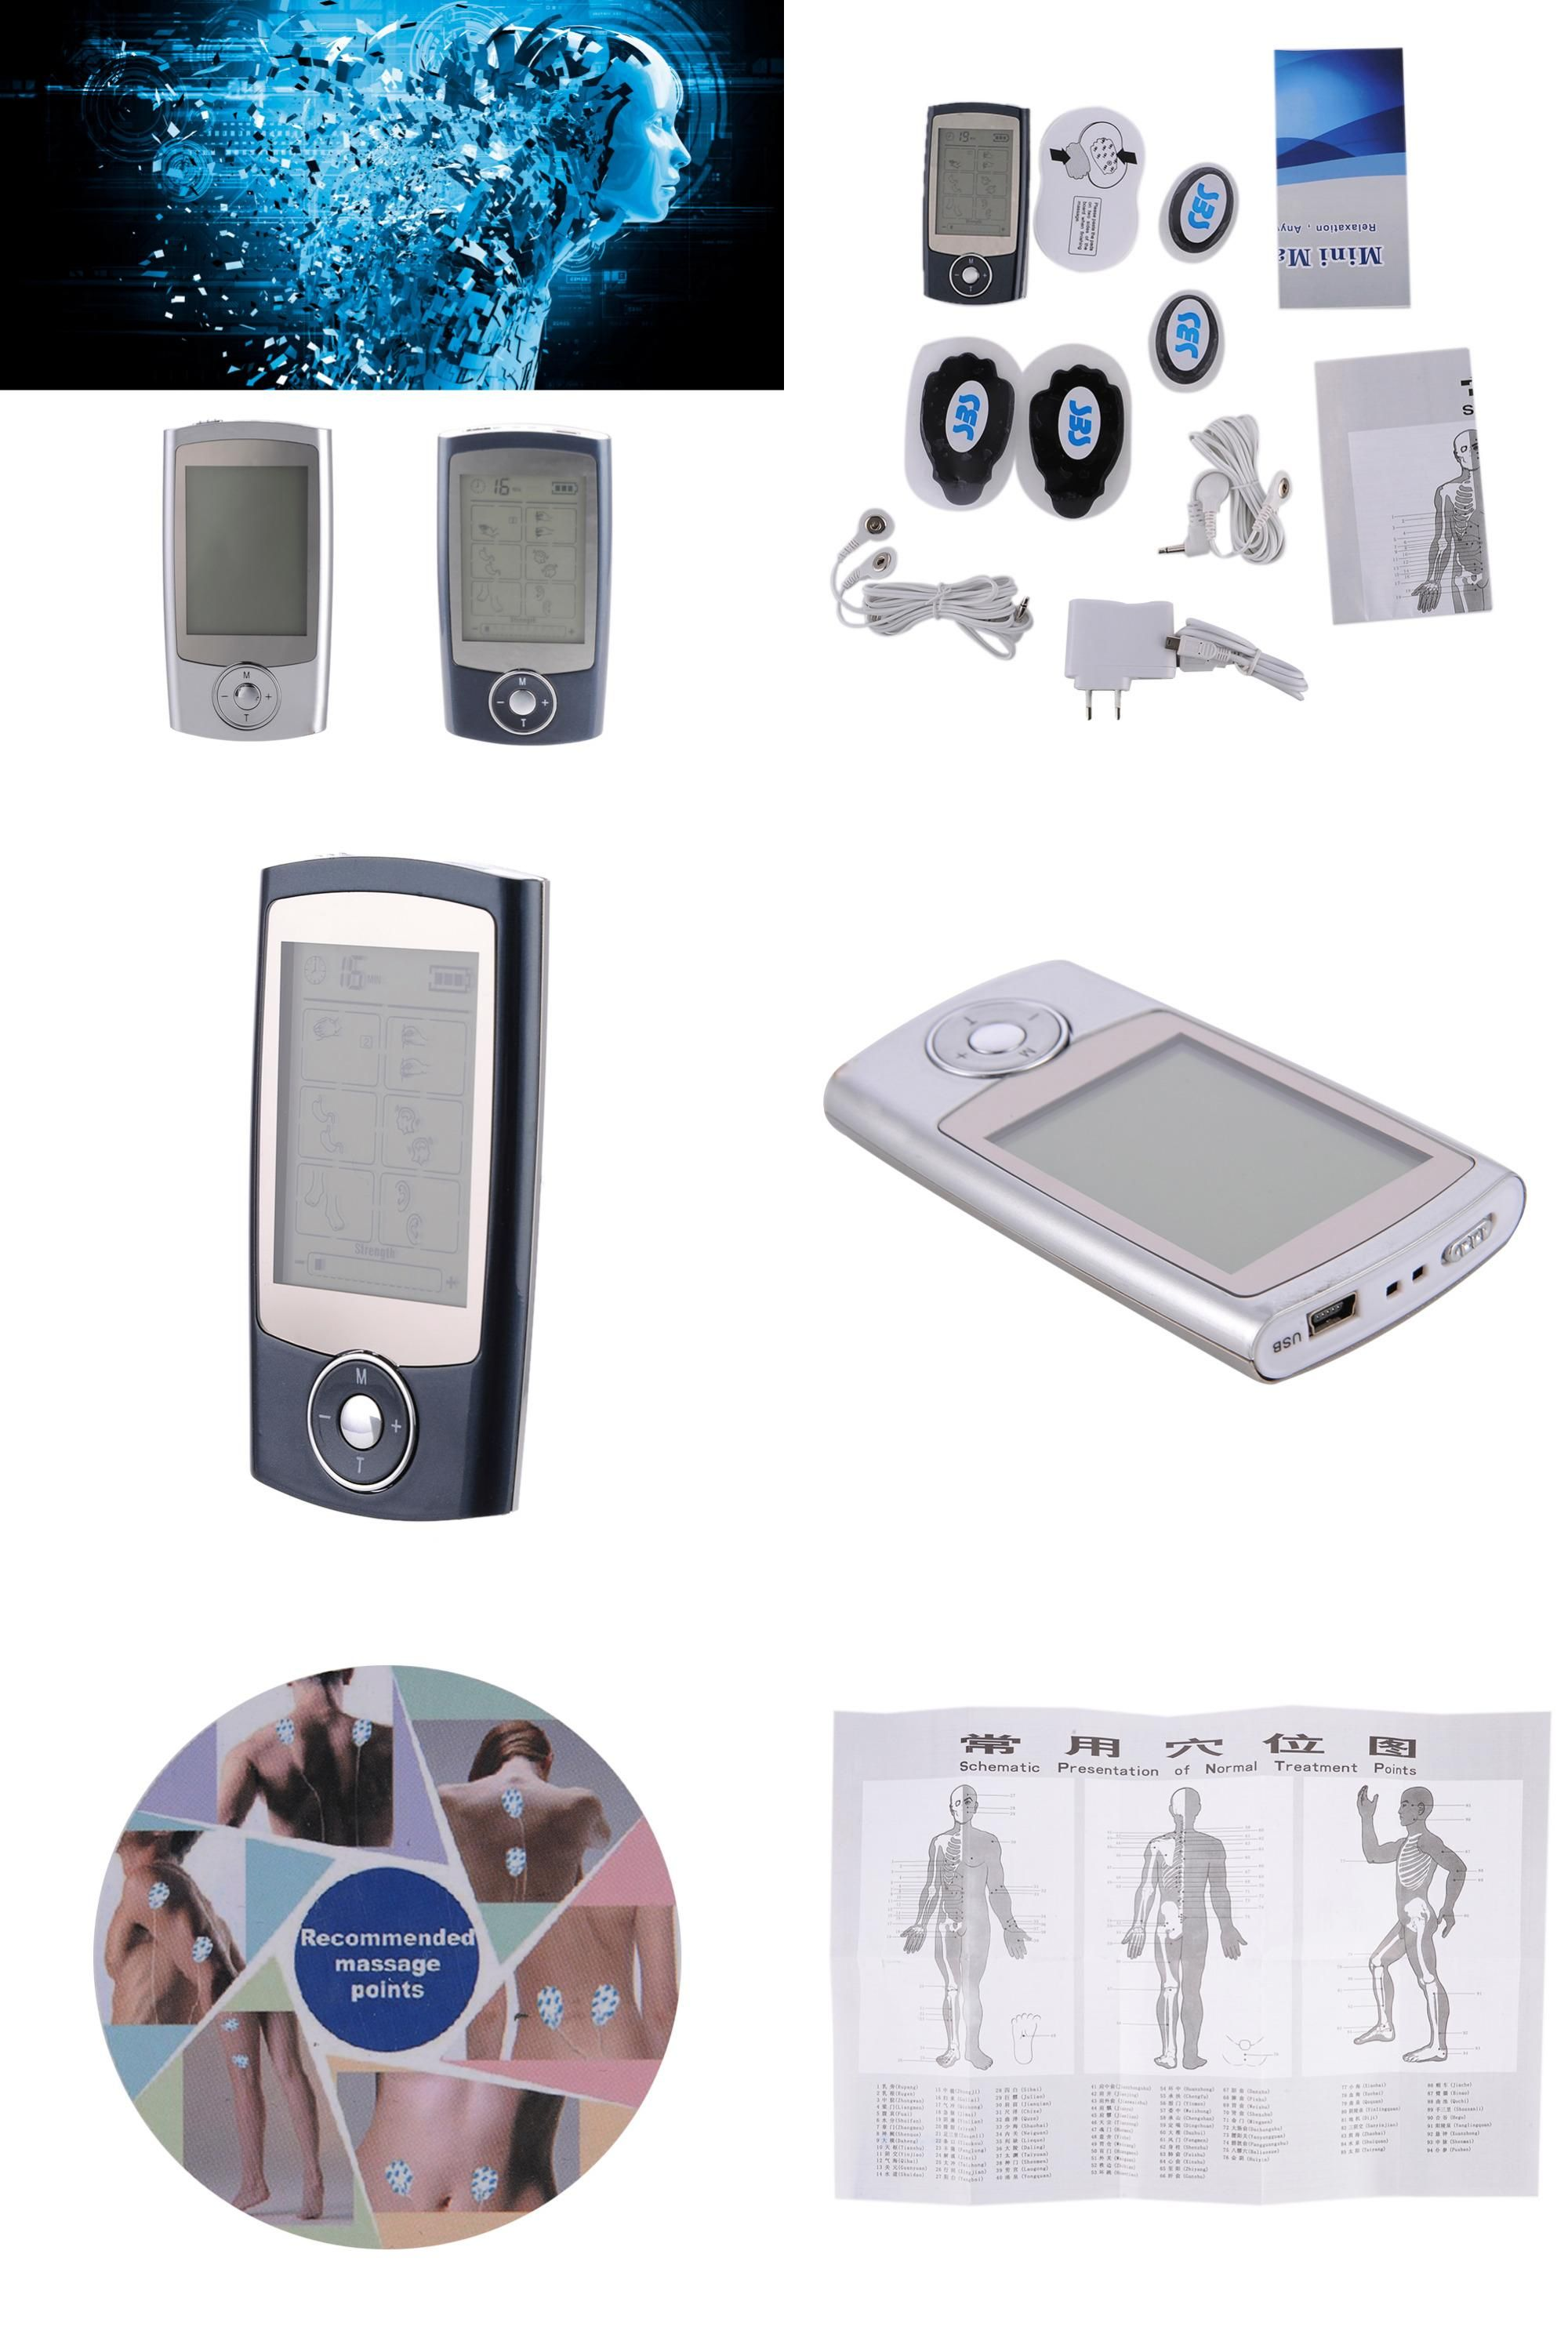 Visit to Buy] Rechargeable Digital Electronic Pulse Massager 16